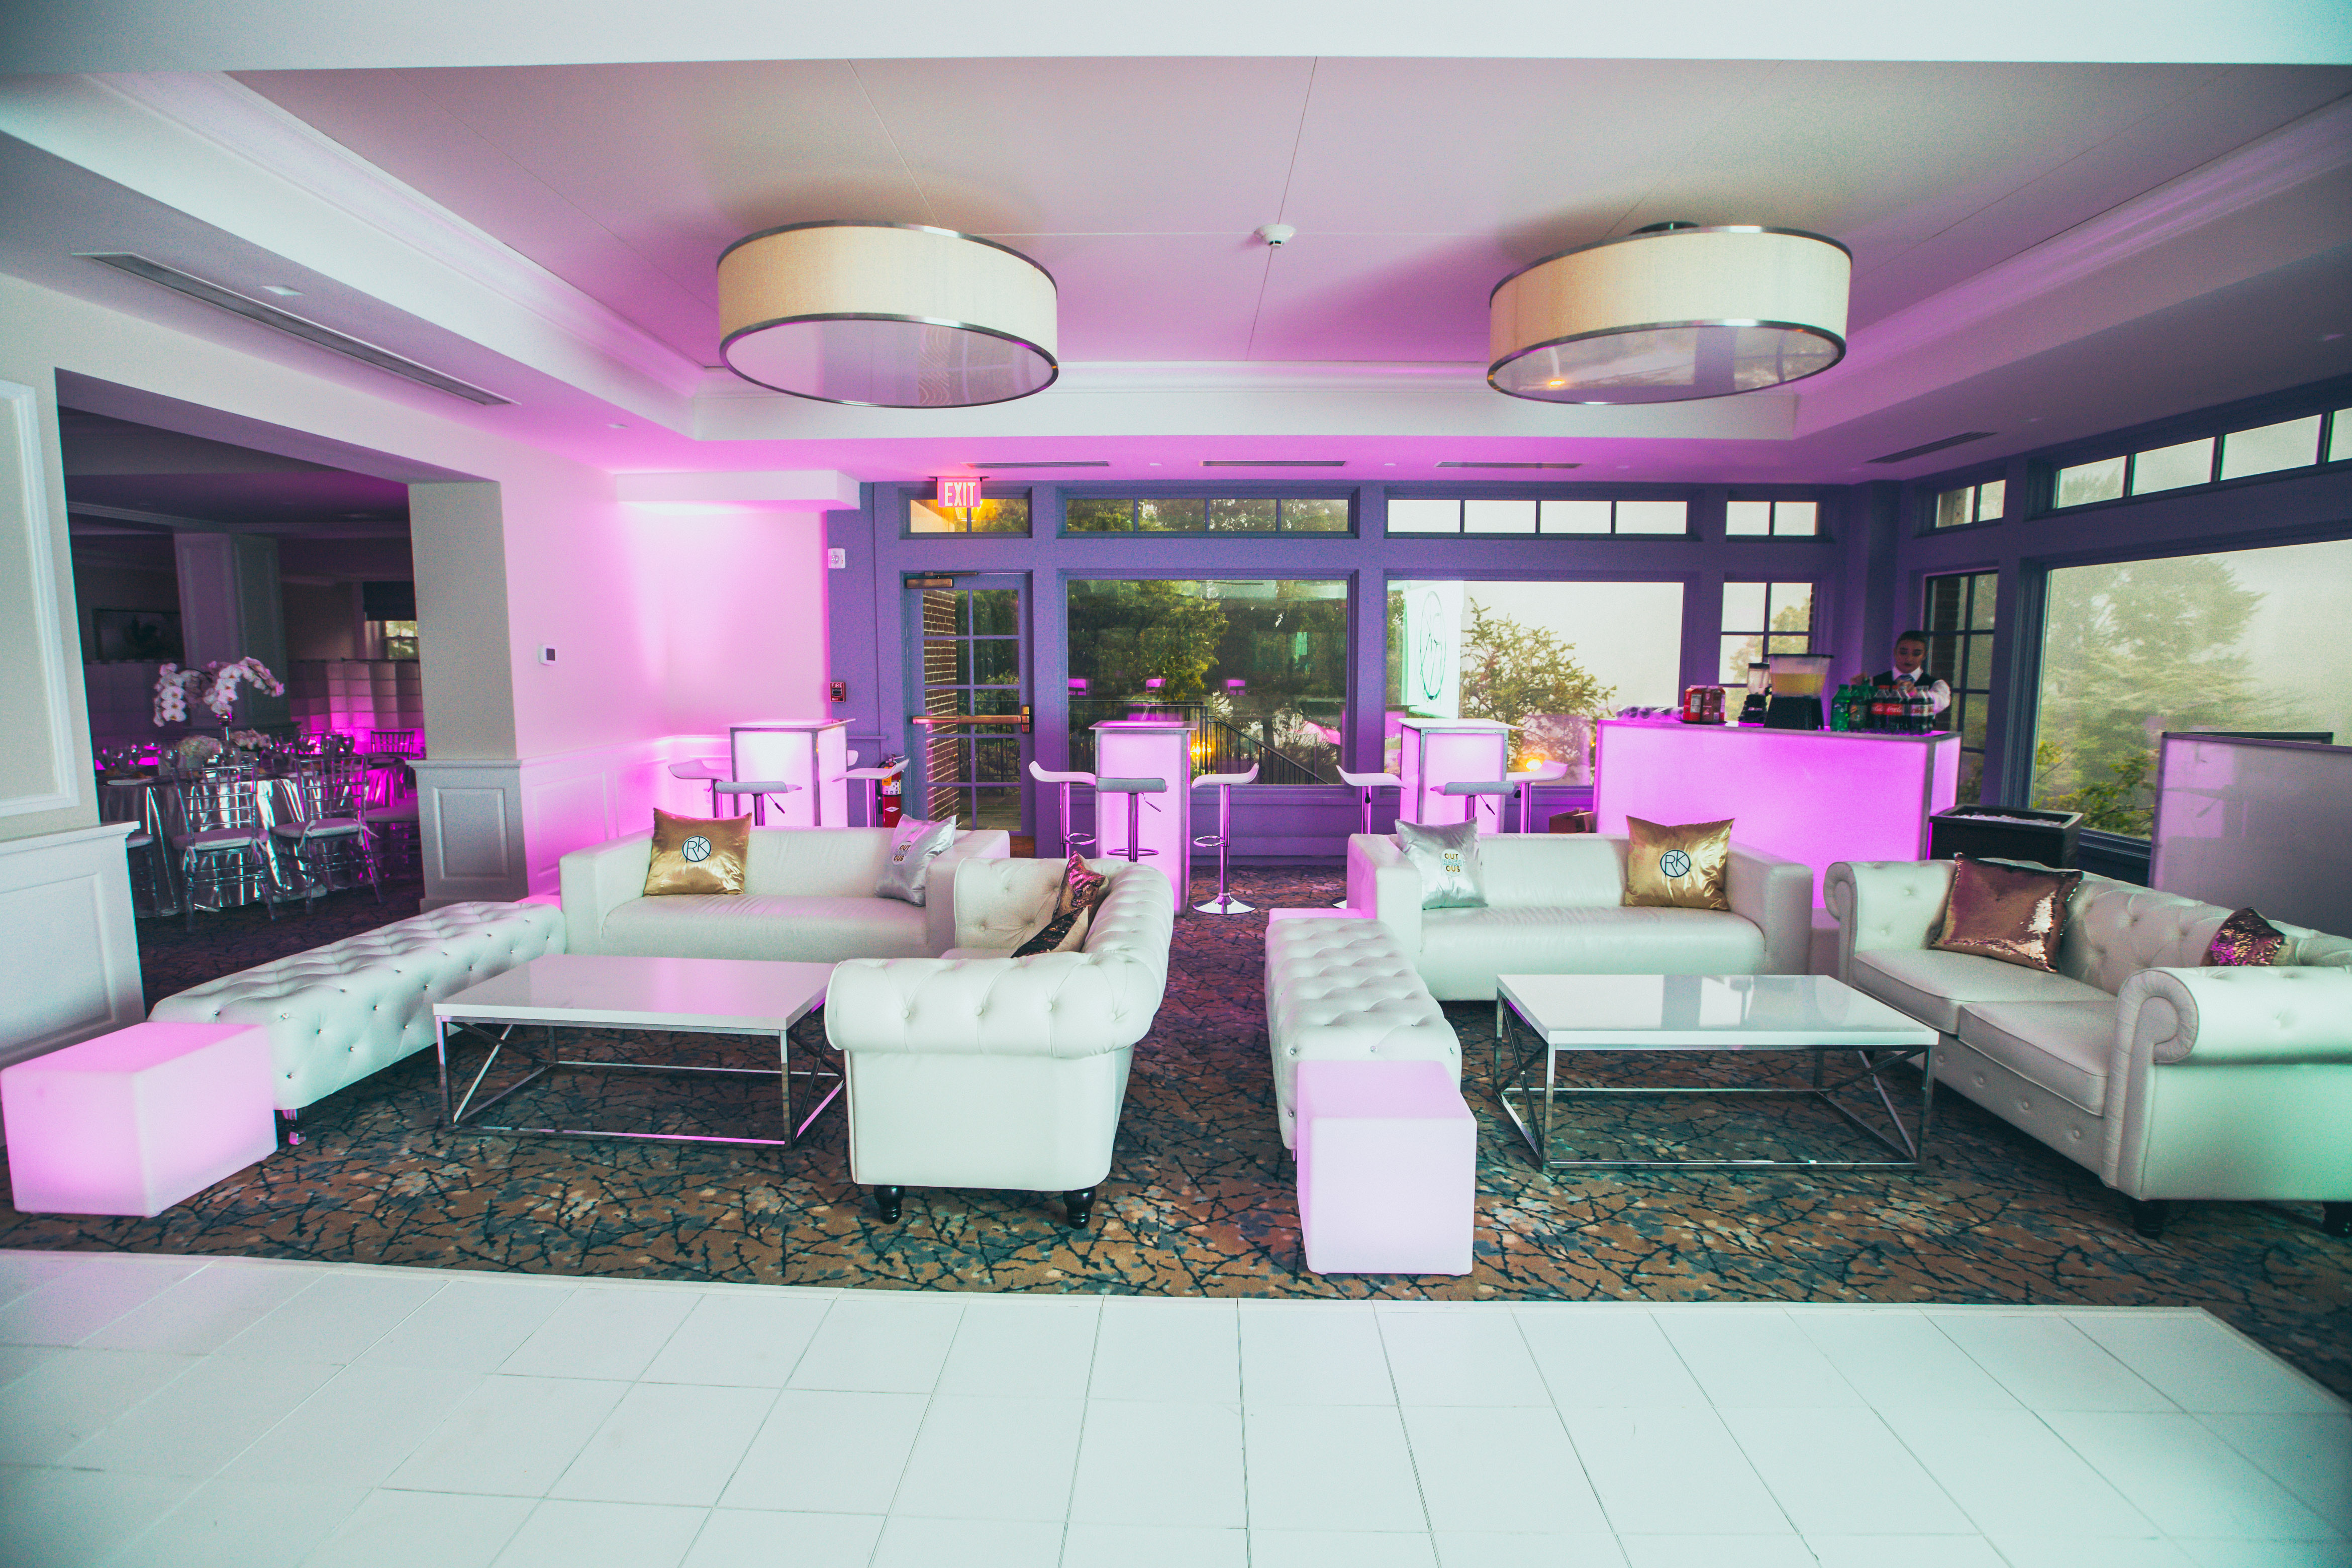 Todd Yahney Events Lounge Decor - Todd Yahney Events